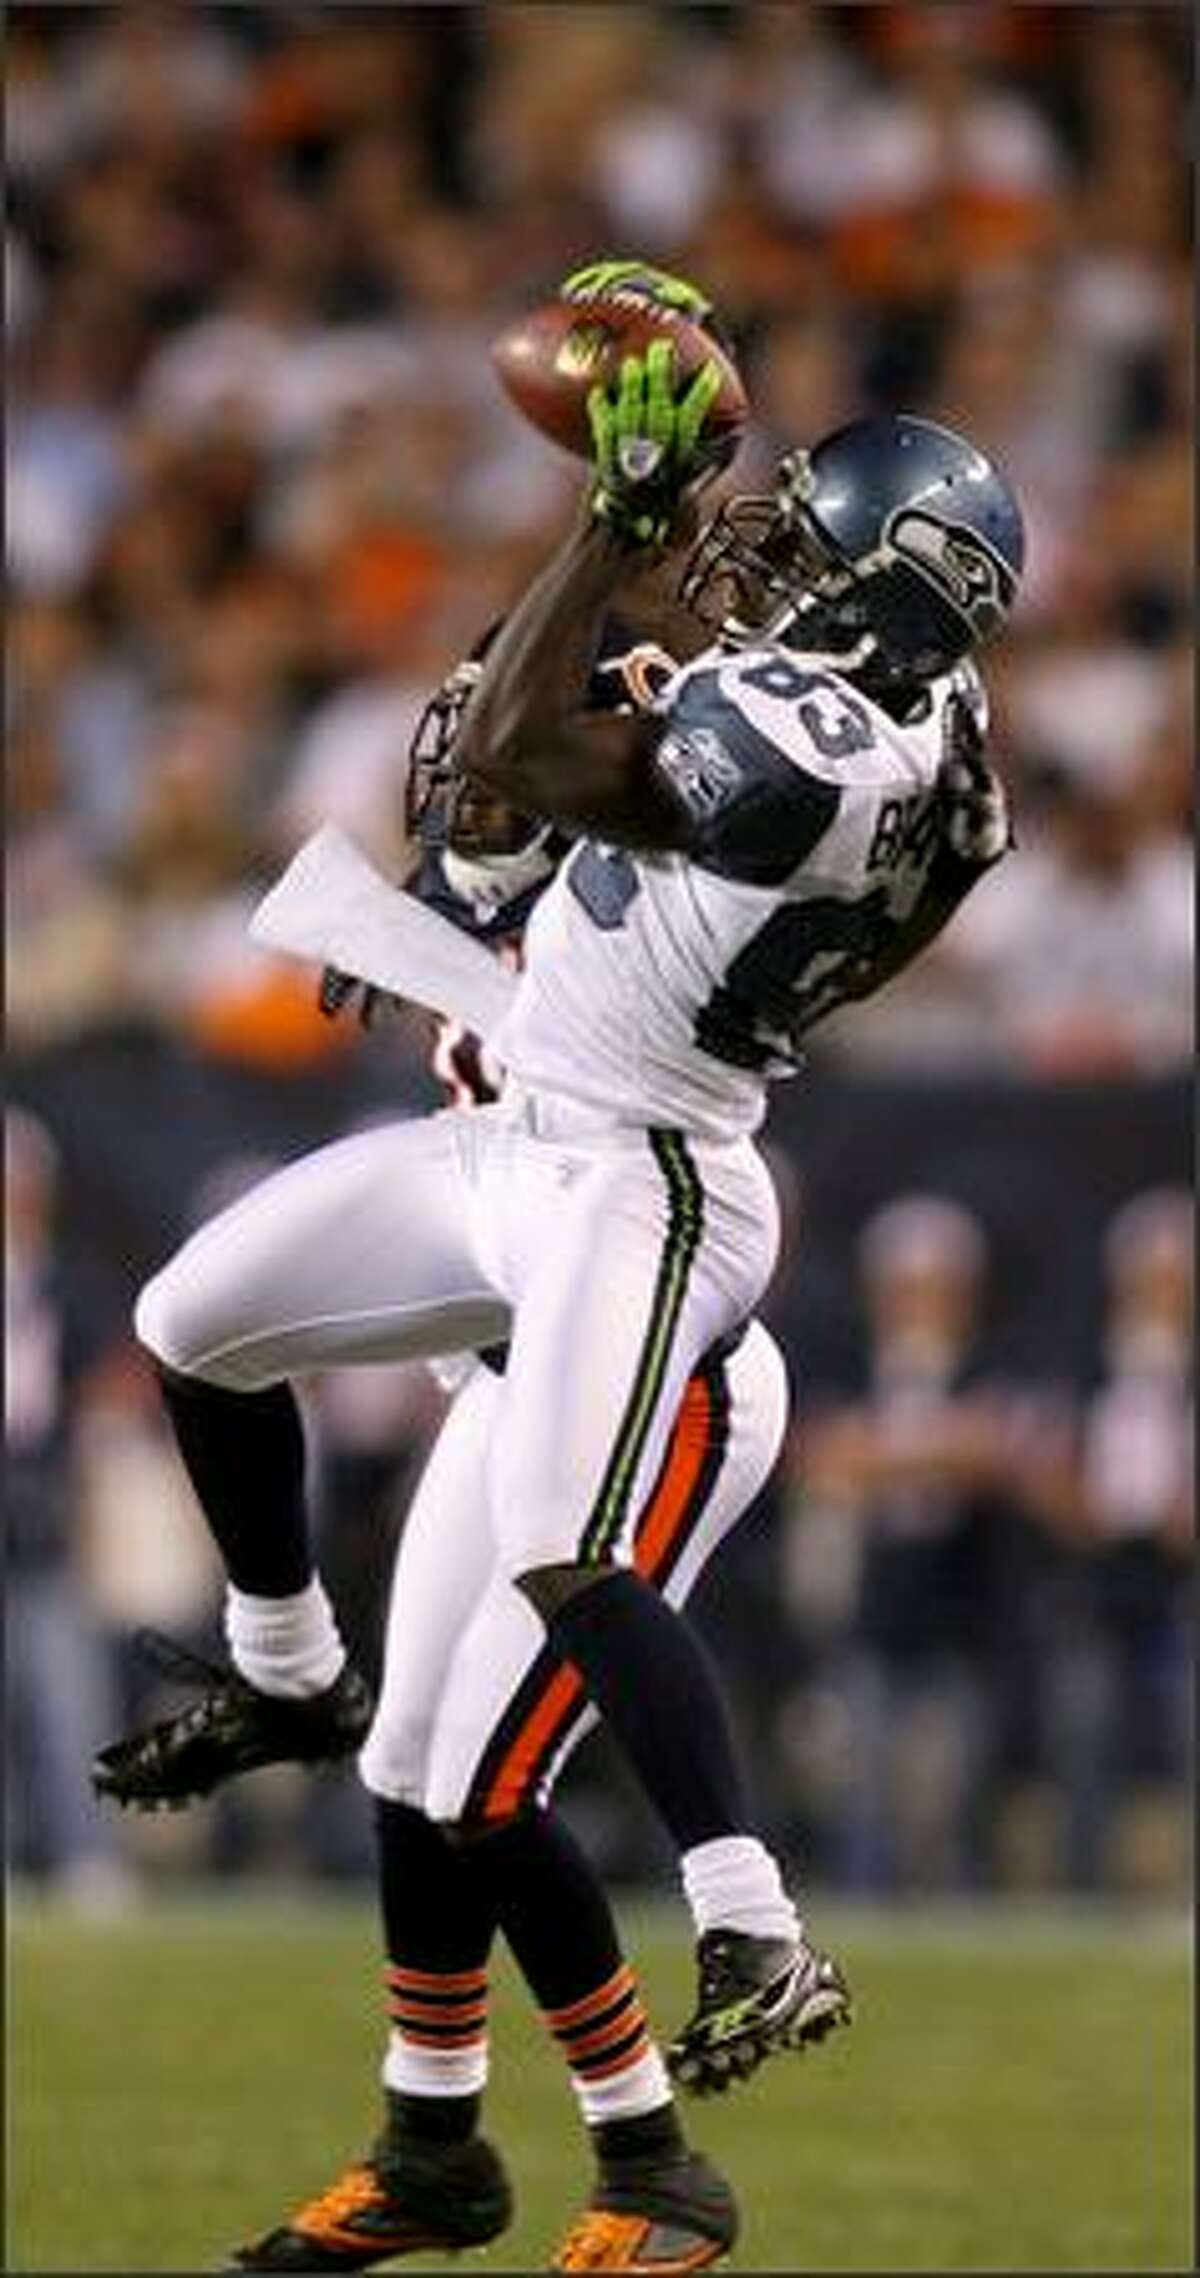 Deion Branch hauls in one of his three catches for 57 yards, a 31-yarder in the first quarter.